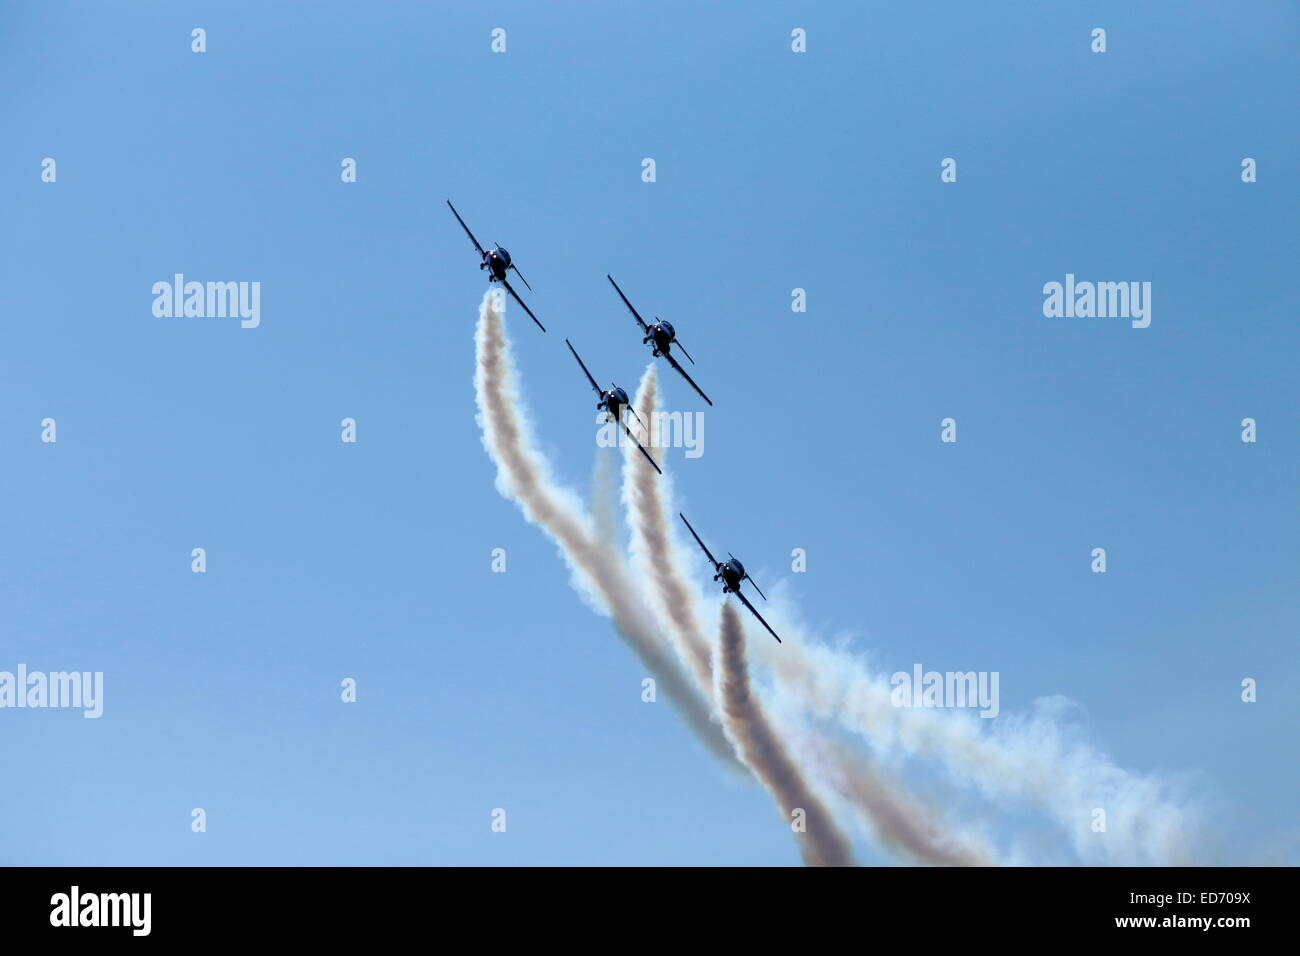 The Canadian Forces Snowbirds aerobatic team air show, Bromont, Eastern Townships, Quebec Province, Canada - Stock Image